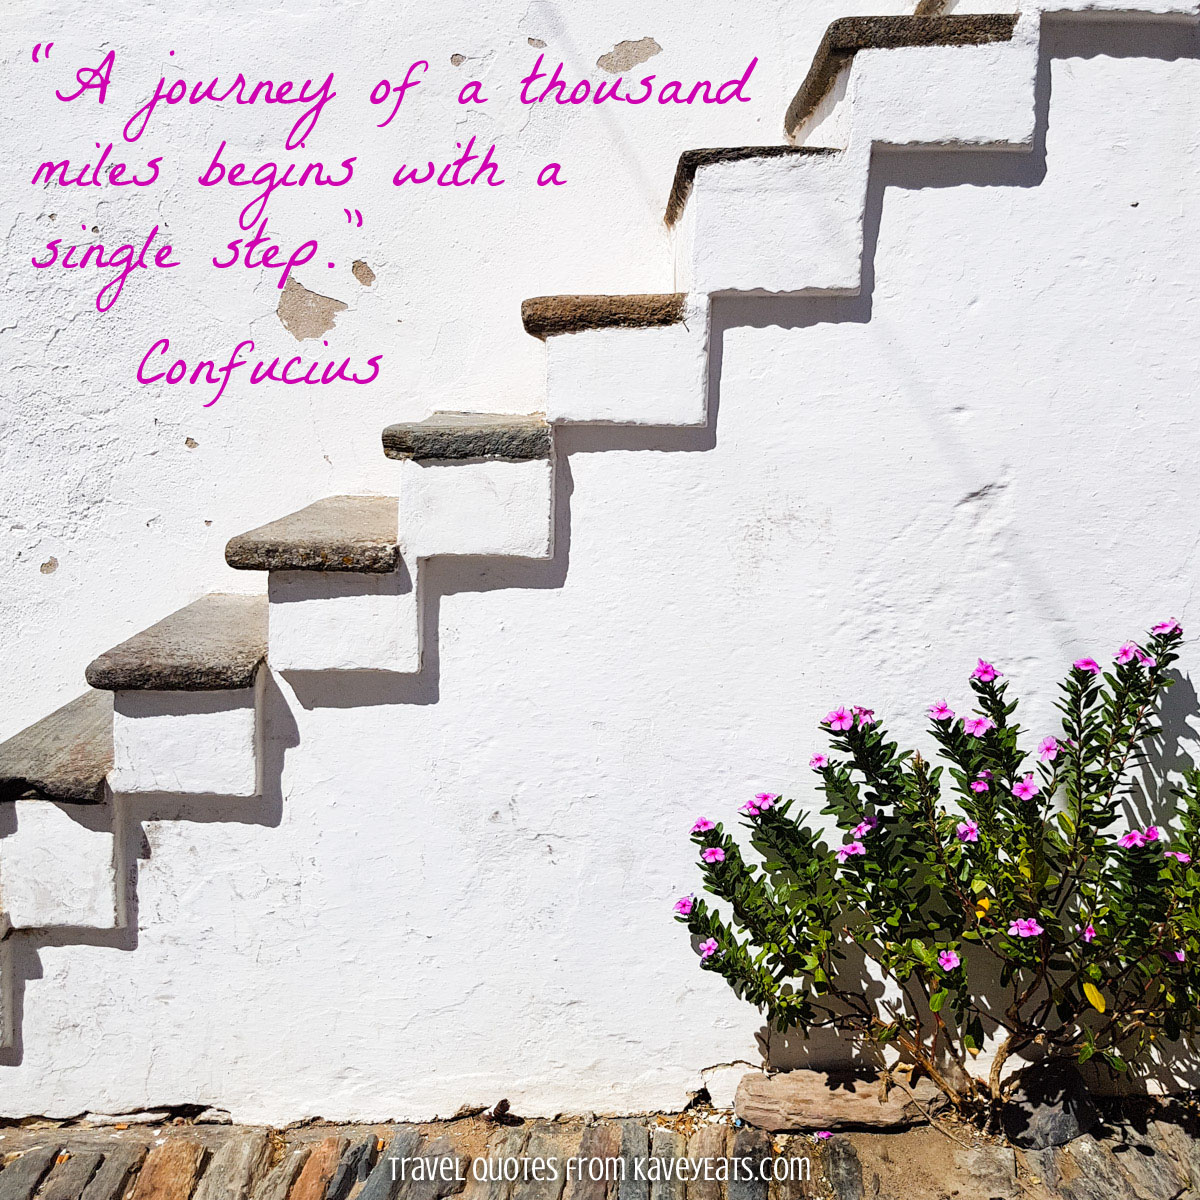 """A journey of a thousand miles begins with a single step."" Confucius"